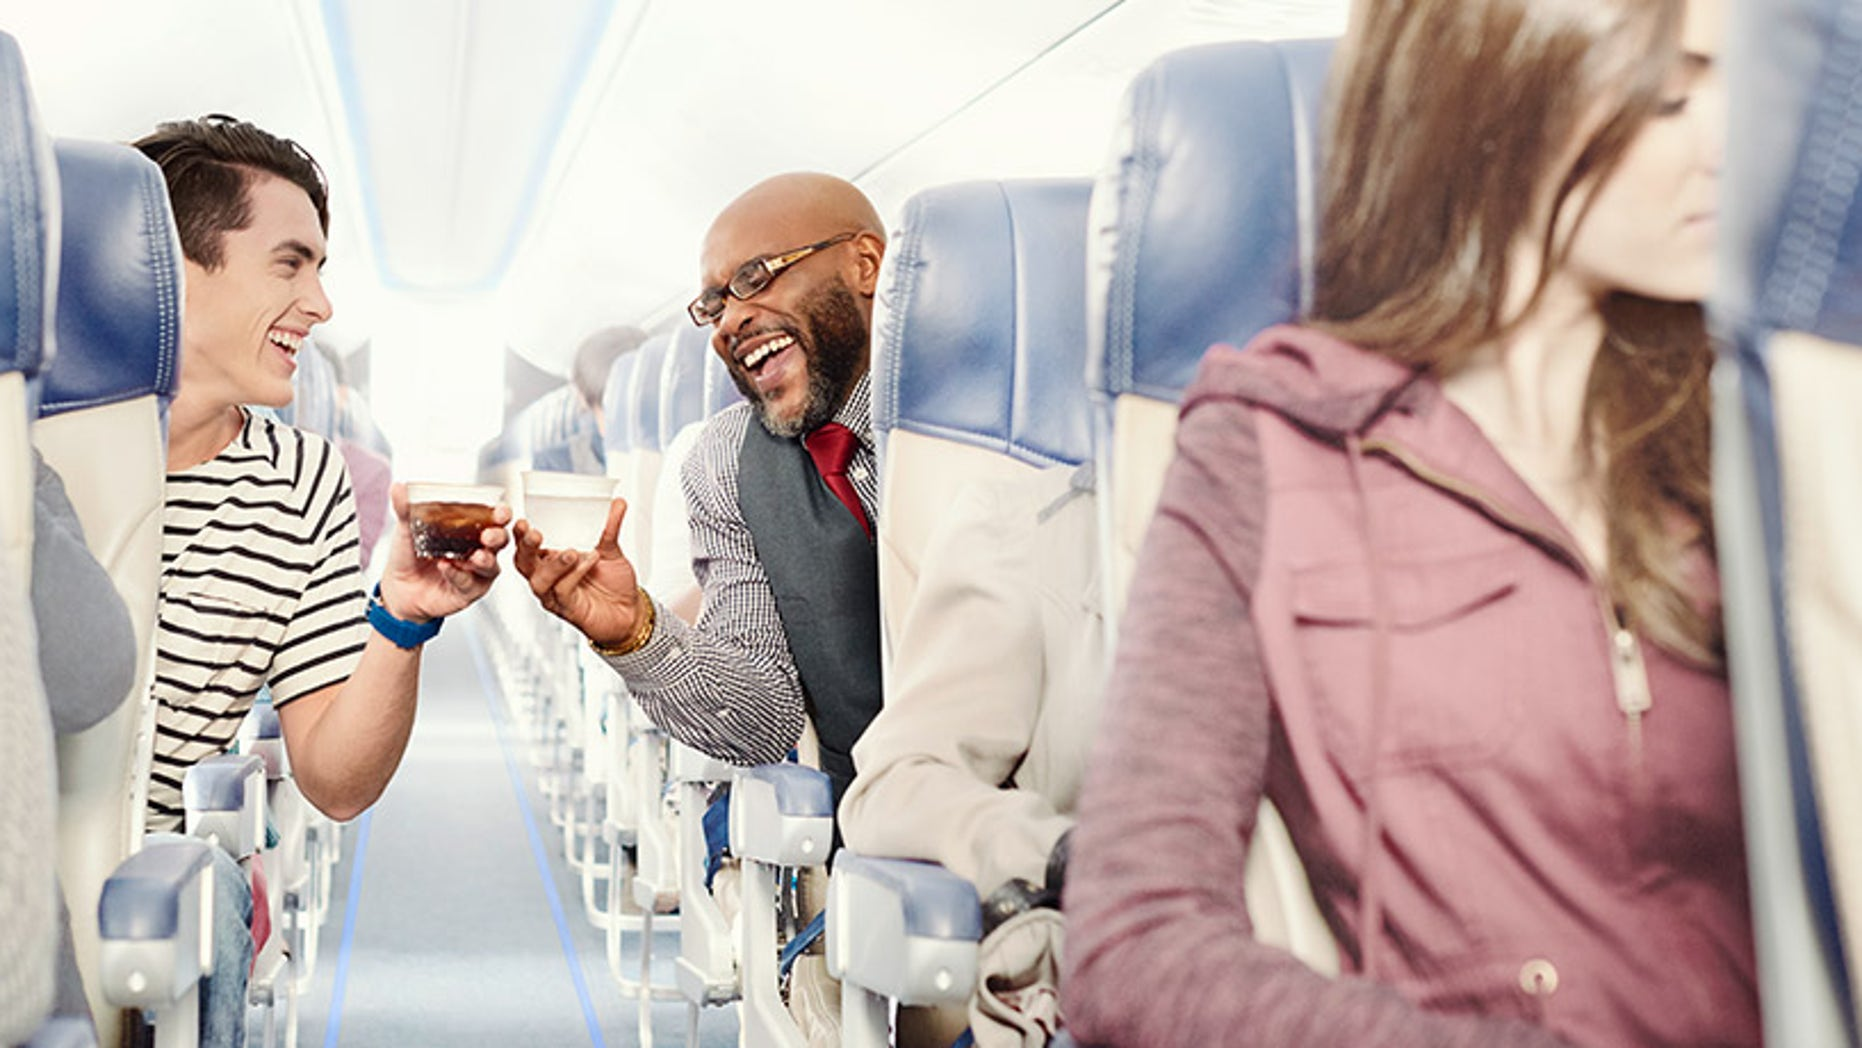 Take a lot of trips from Atlanta? Fly a friend for free.